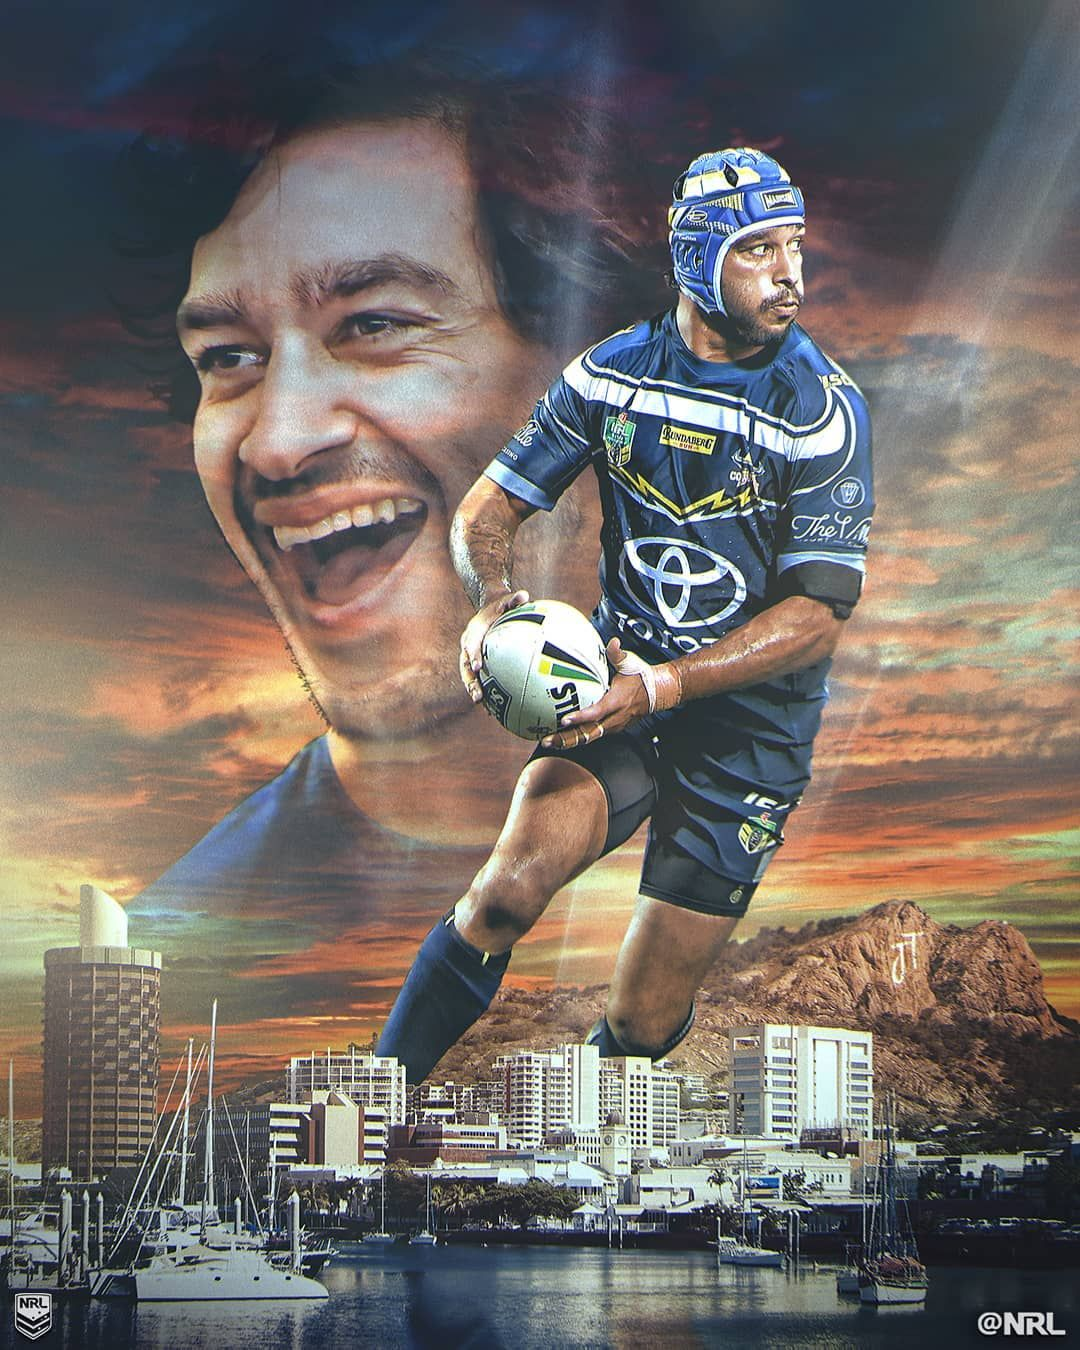 Pin By Shiftrefresh On Rugby League Johnathan Thurston Nrl Rugby League